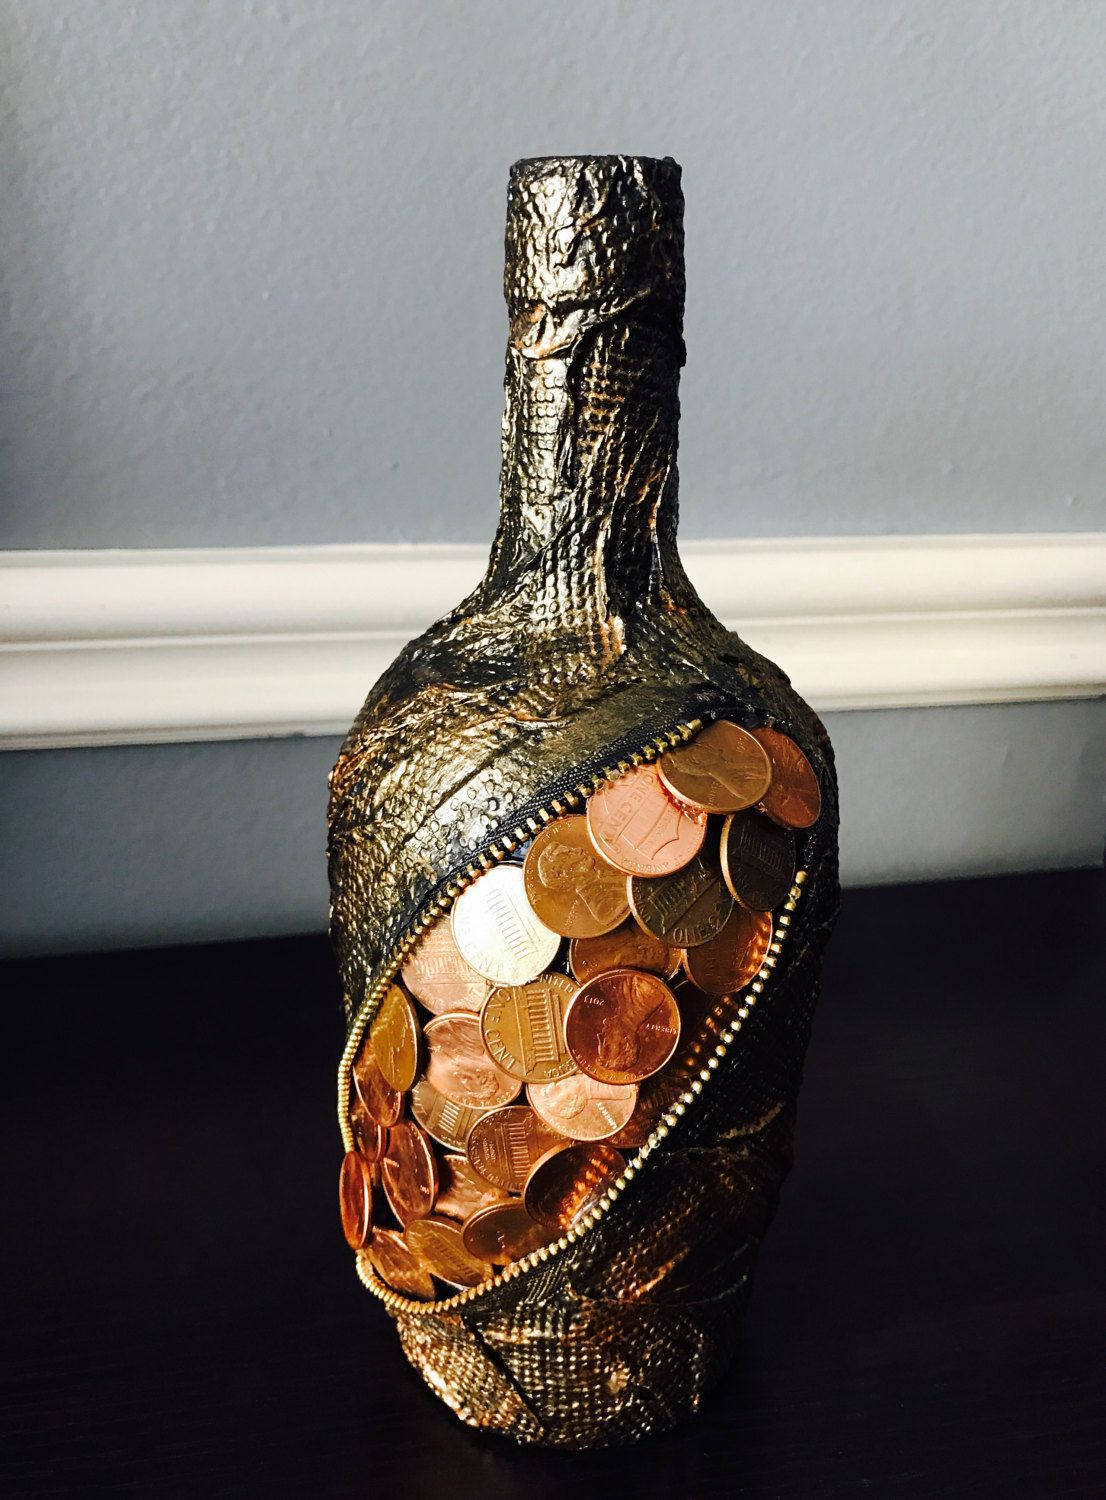 Wine Bottle Decor.Home Decor.Glass Bottle Art.Money Art ...